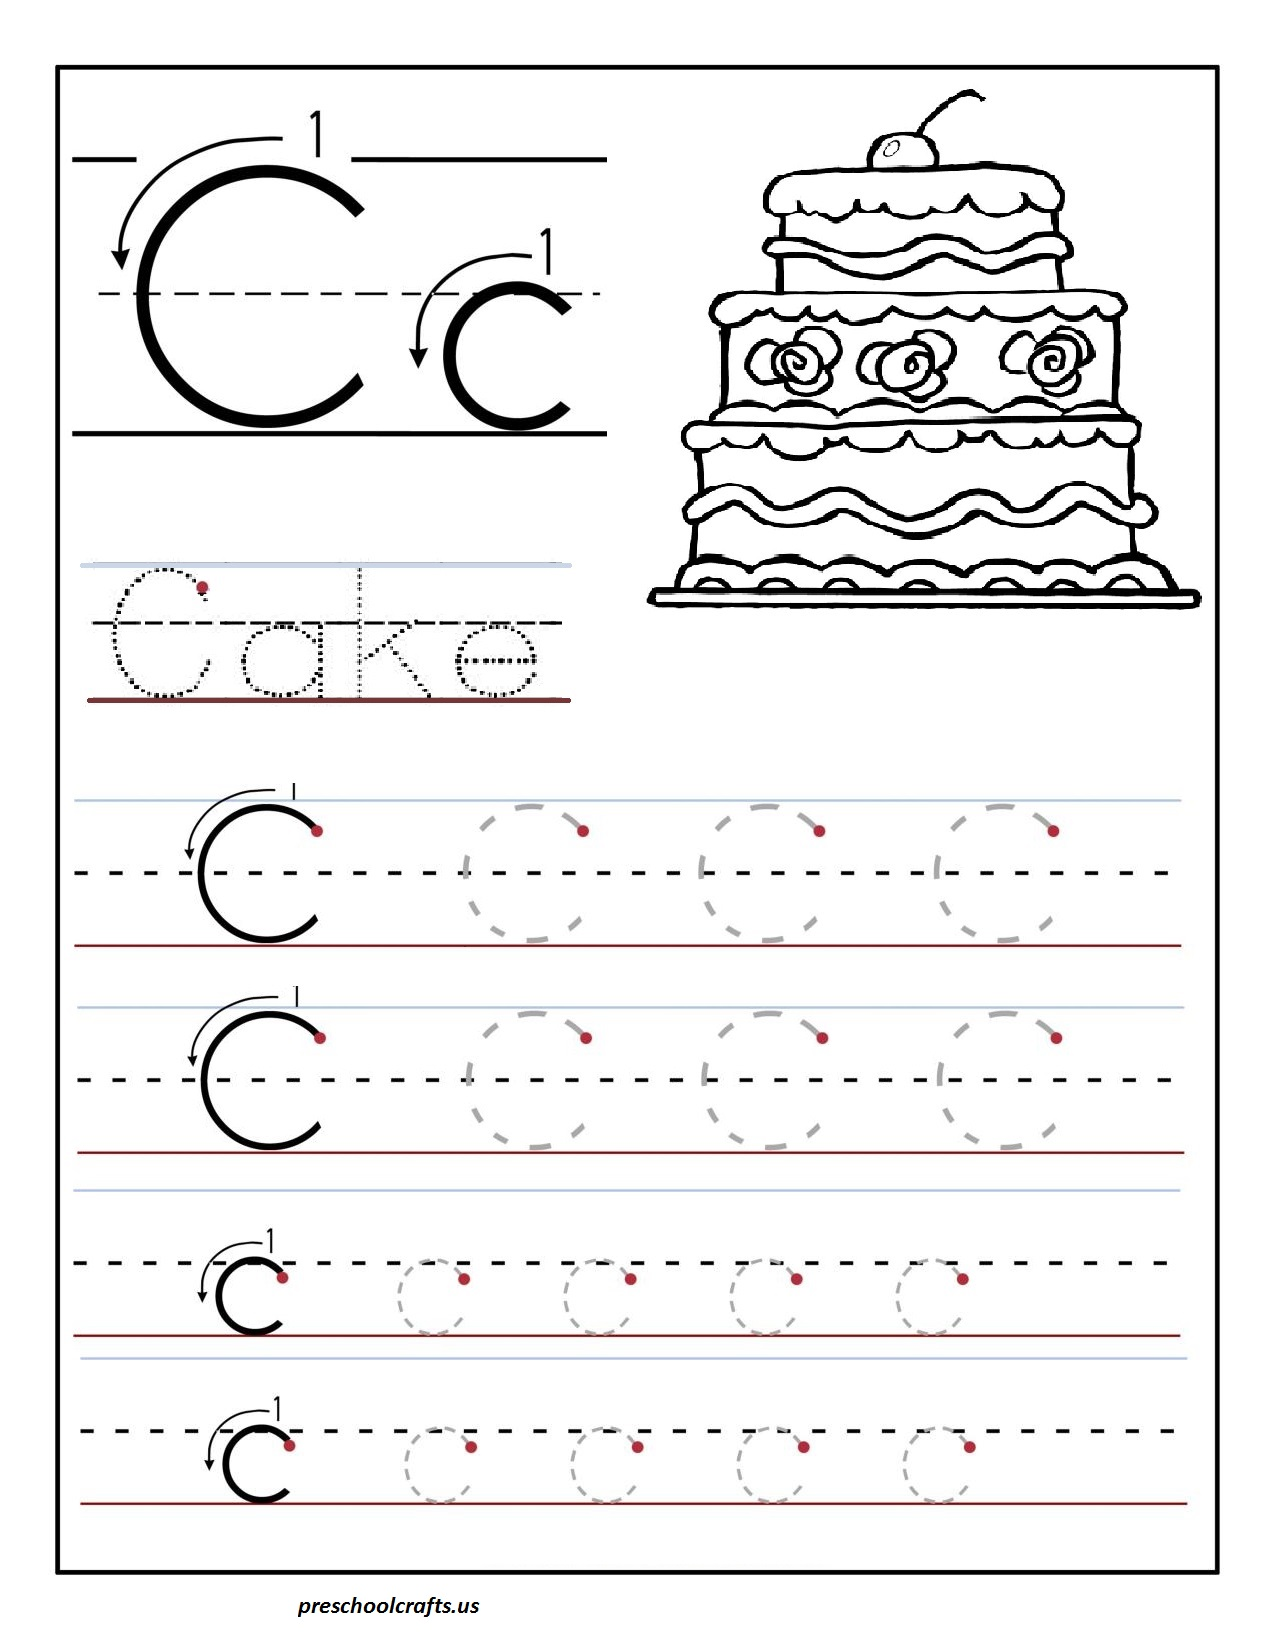 Printable Letter Worksheets H